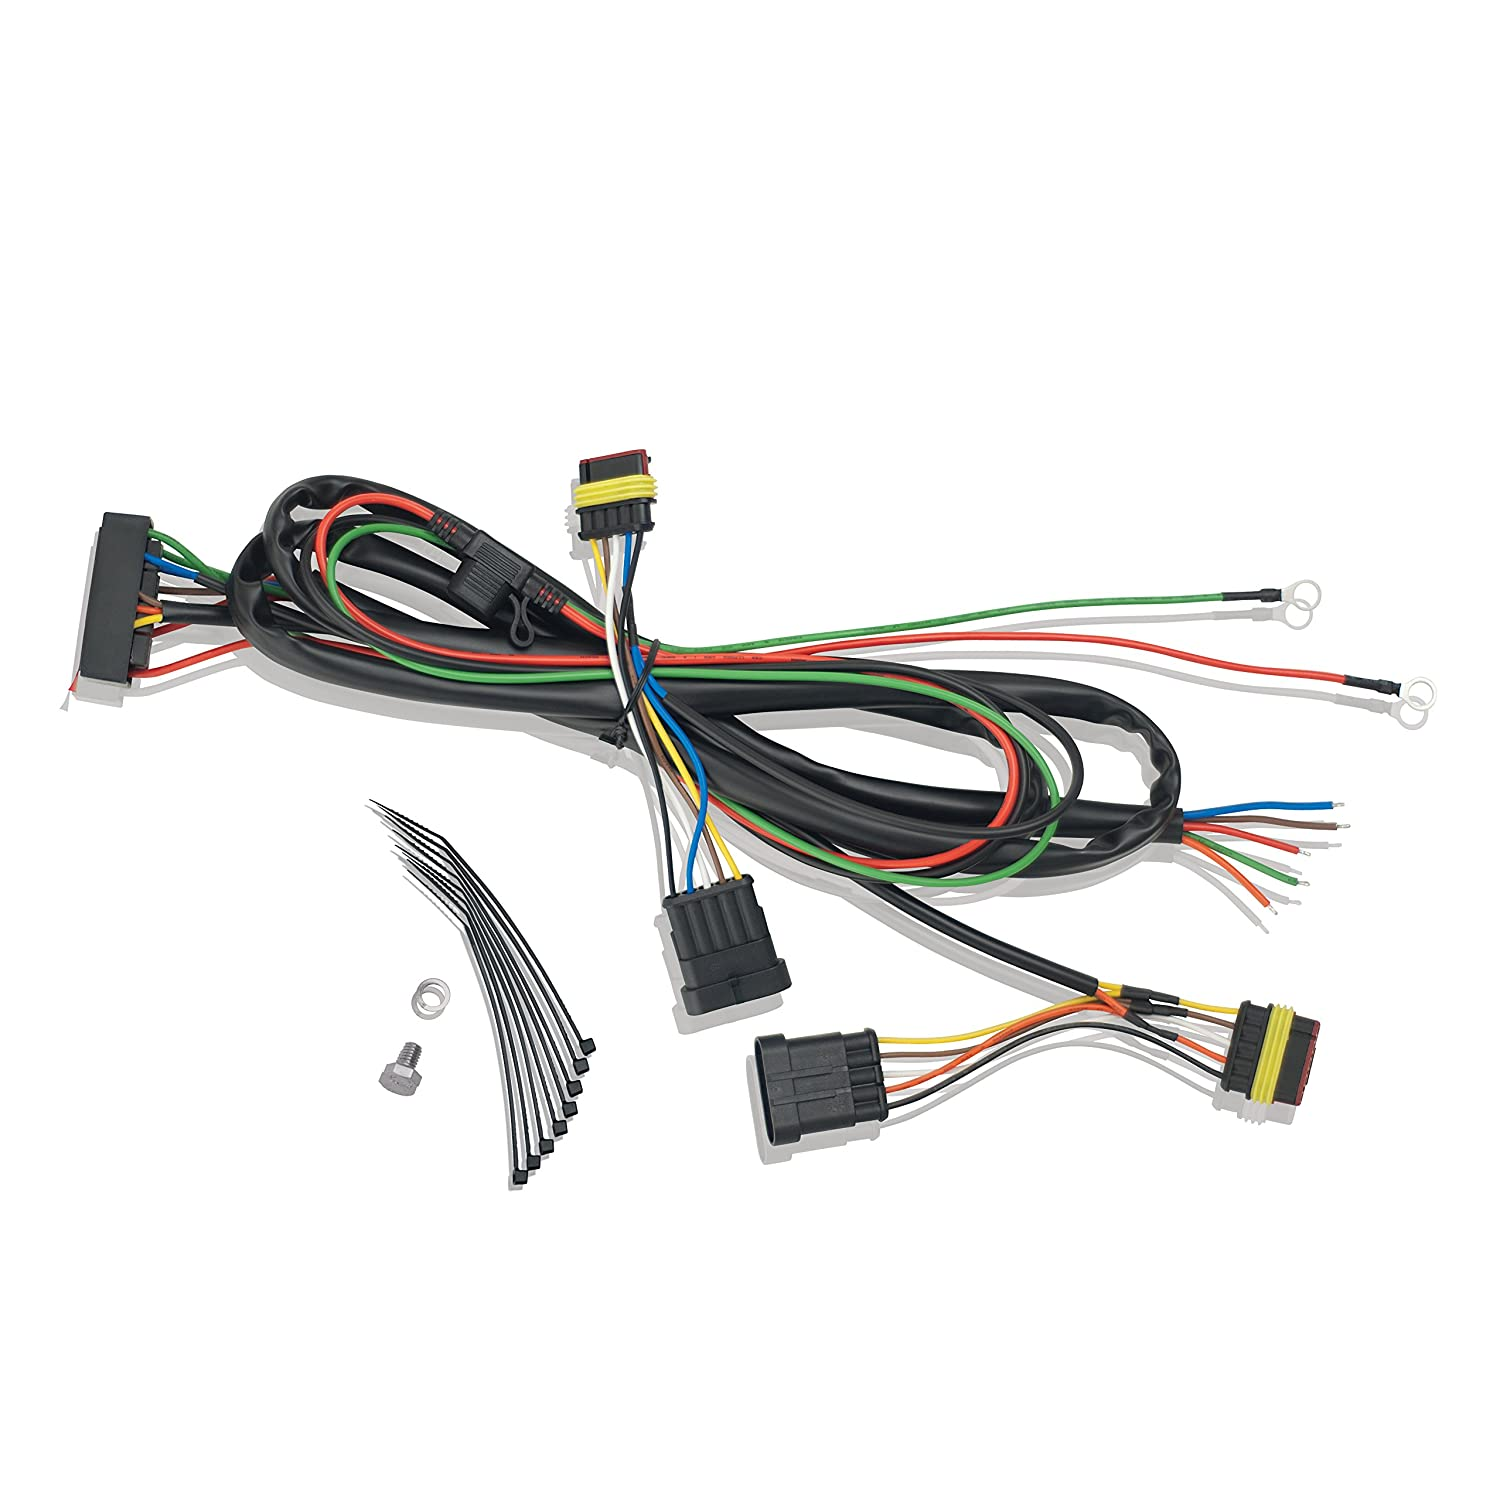 81dZHpG1lCL._SL1500_ amazon com show chrome accessories 41 162 trailer wire harness wire harness accessories at eliteediting.co